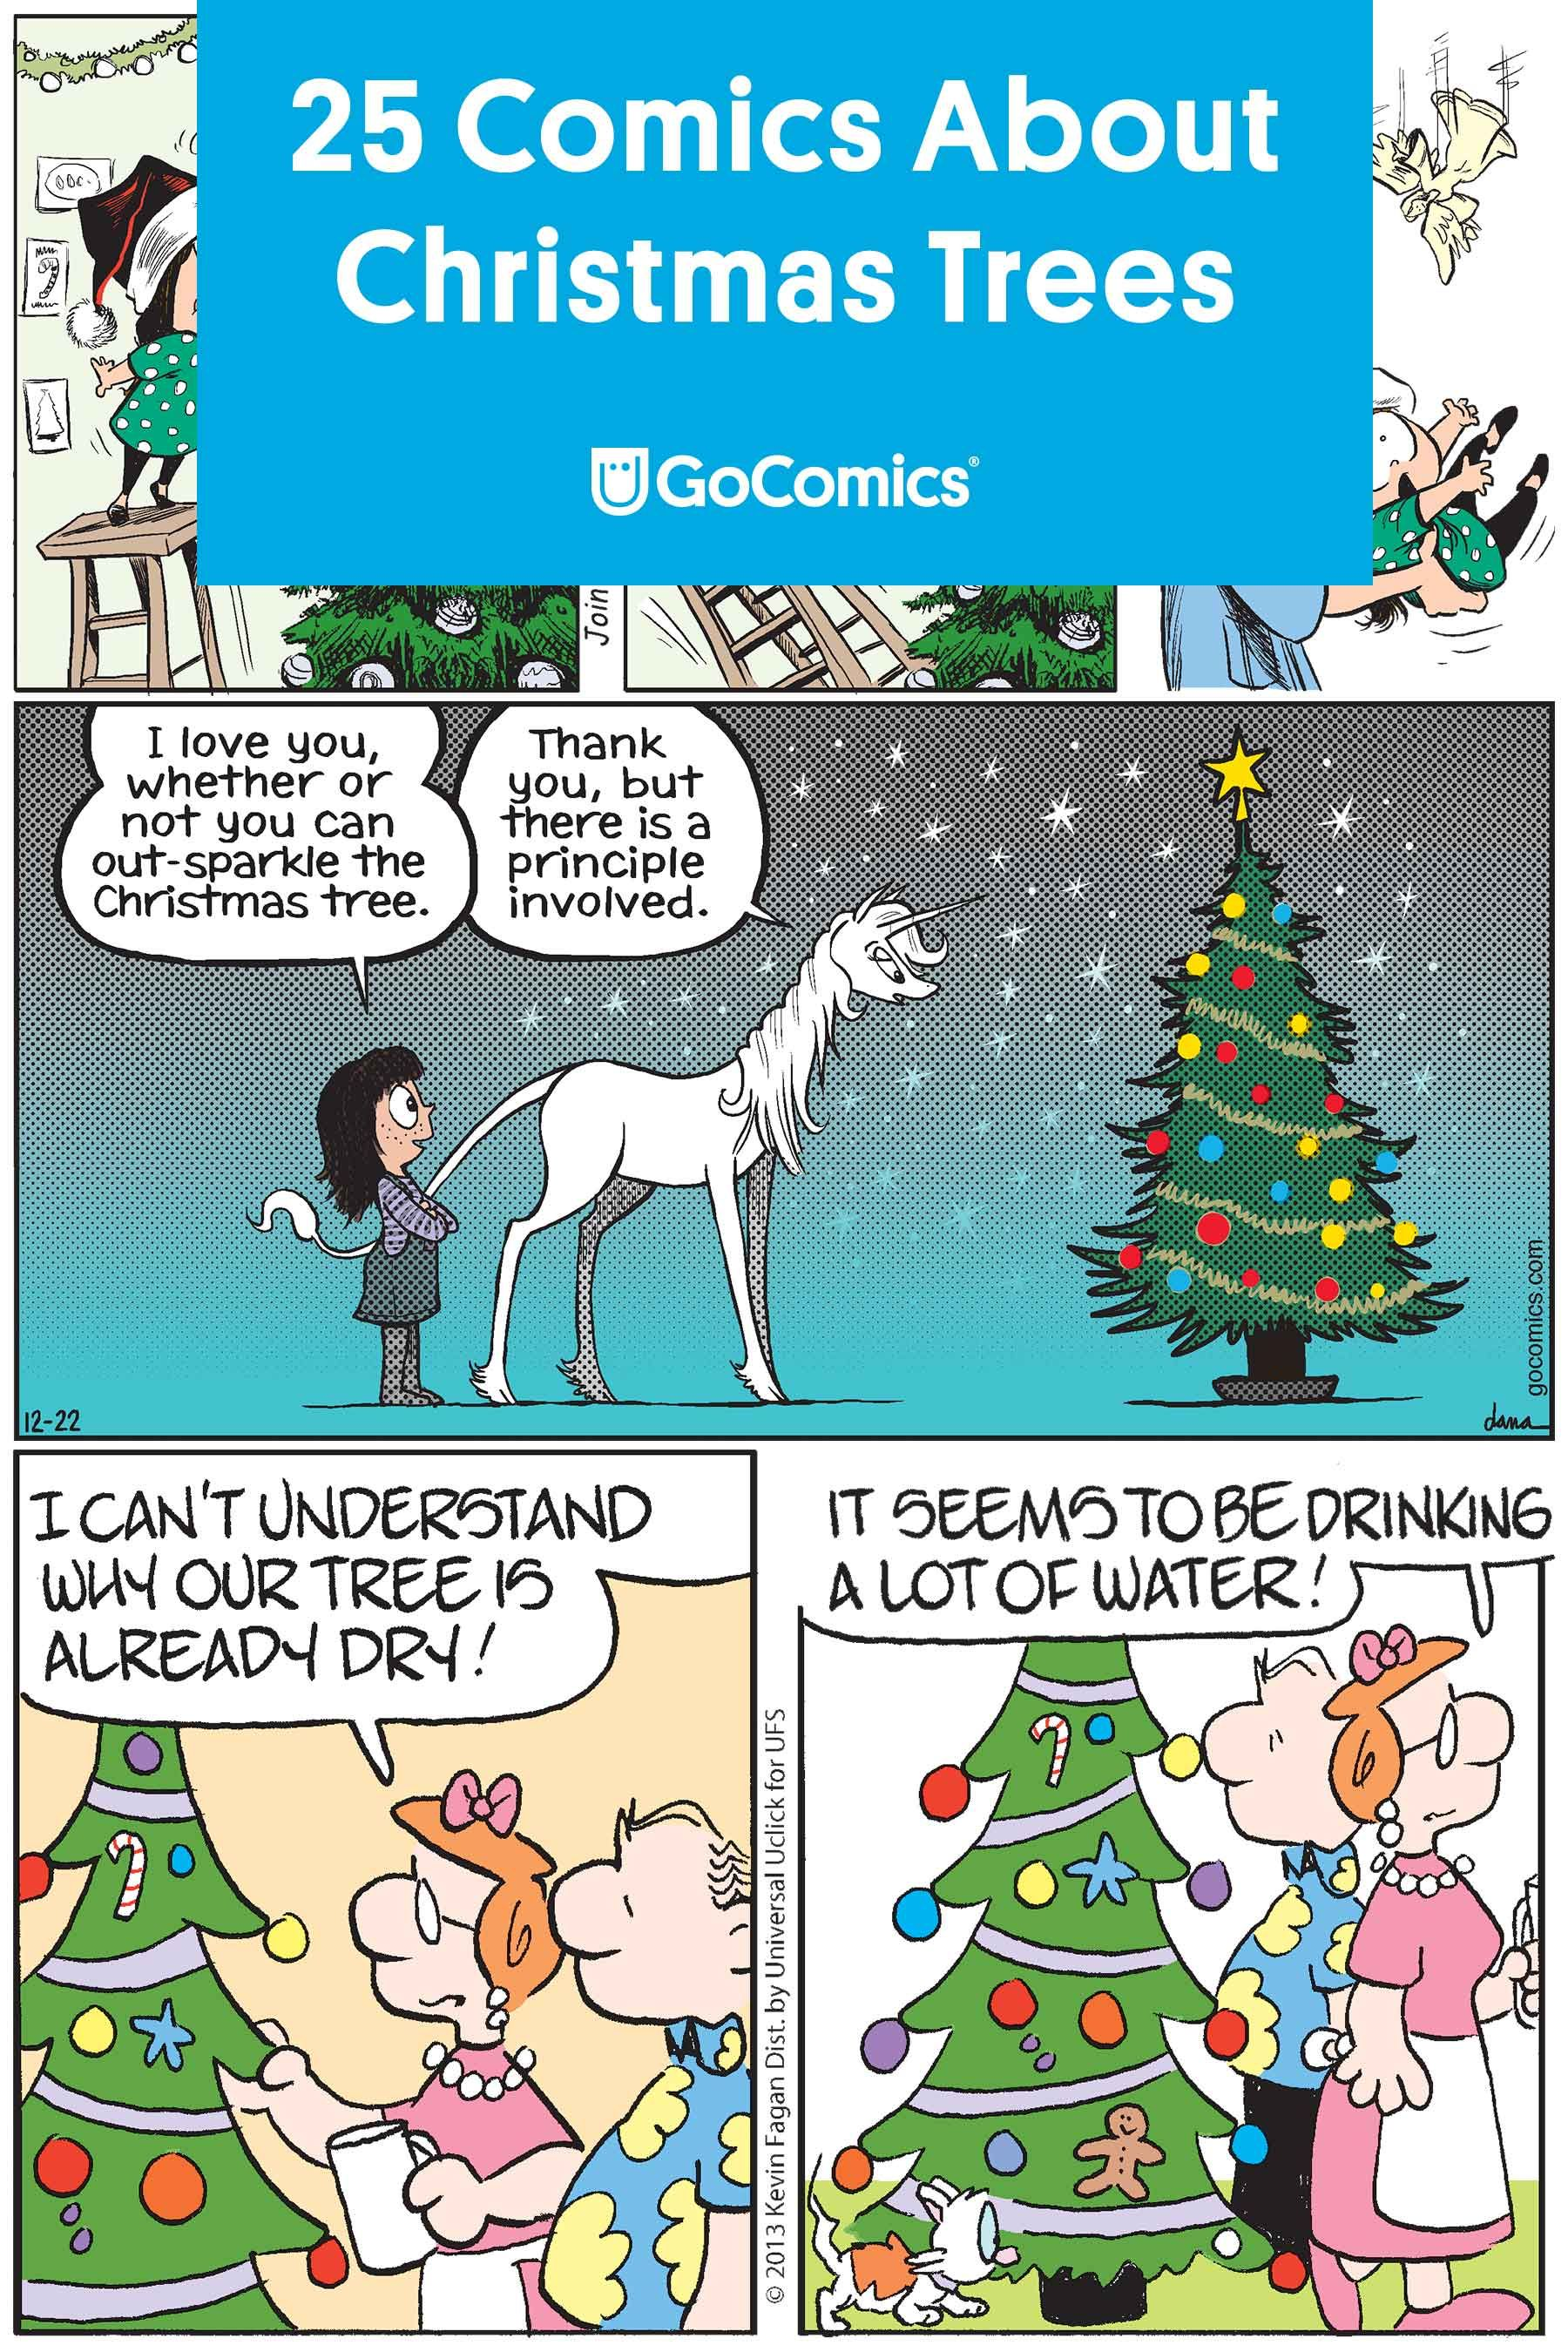 Oh Tannenbaum 25 Comics About Christmas Trees Gocomics Com Christmas Comics Funny Christmas Tree Christmas Humor